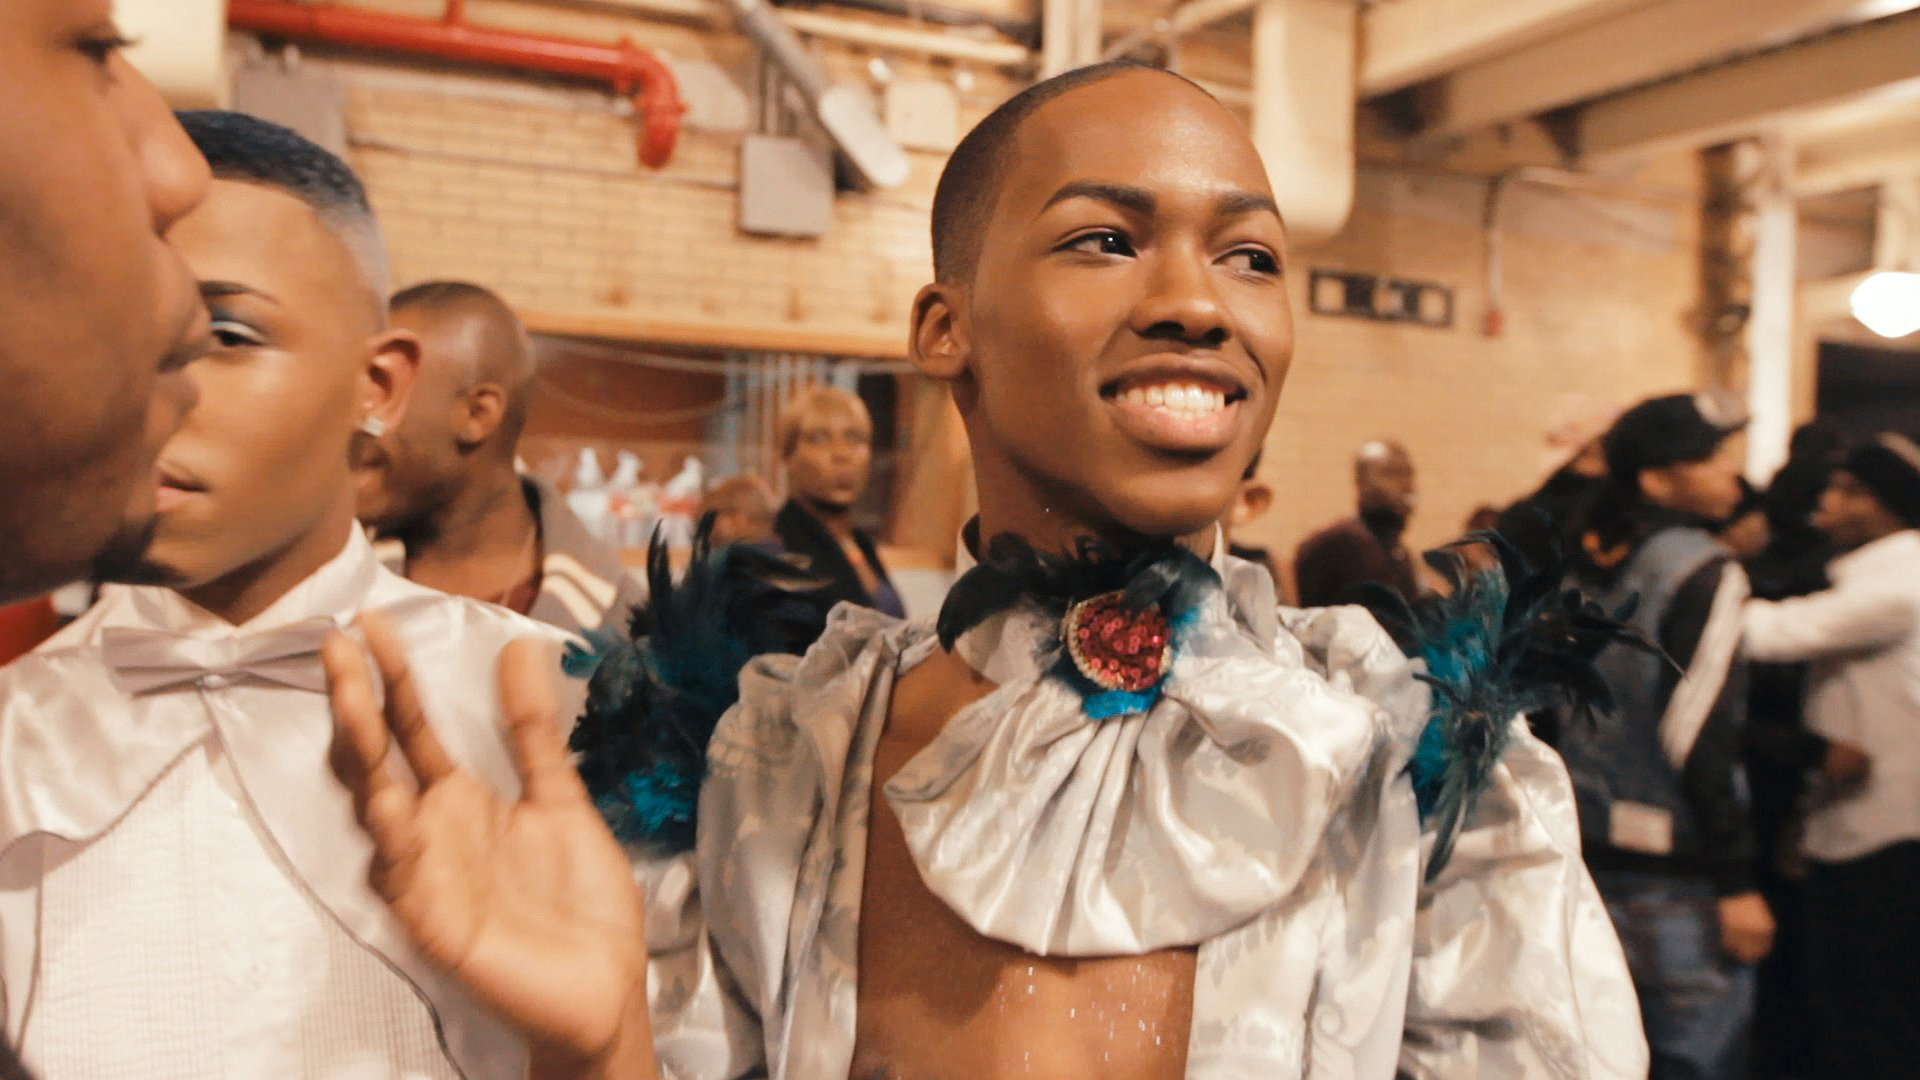 Winnen | Docu over de flamboyante Kiki-scene in New York